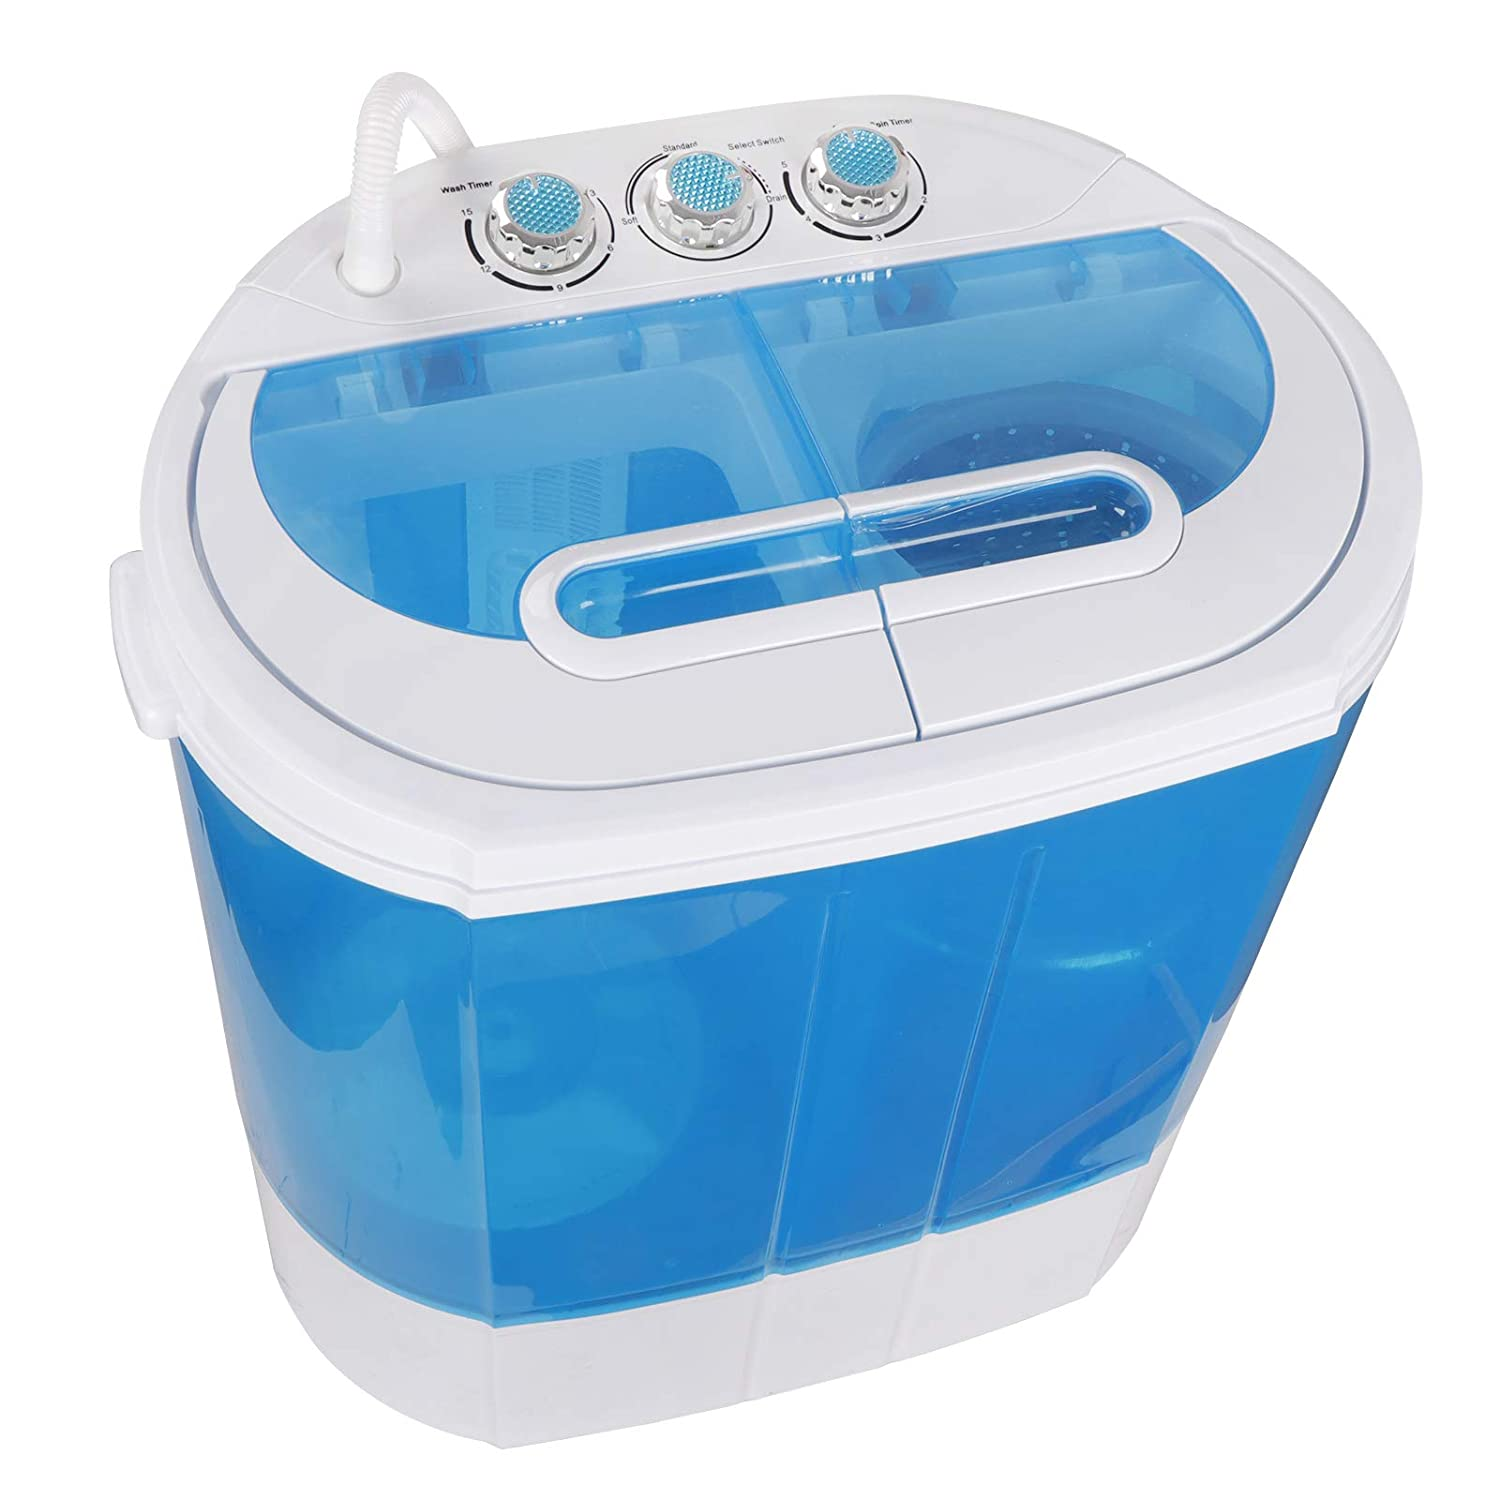 SUPER DEAL Portable Washing Machine, Mini Twin Tub Washing Machine w/Washer&Spinner, Gravity Drain Pump, 9.9lbs Capacity For Camping, Apartments, Dorms, College Rooms, RV's, Delicates and more